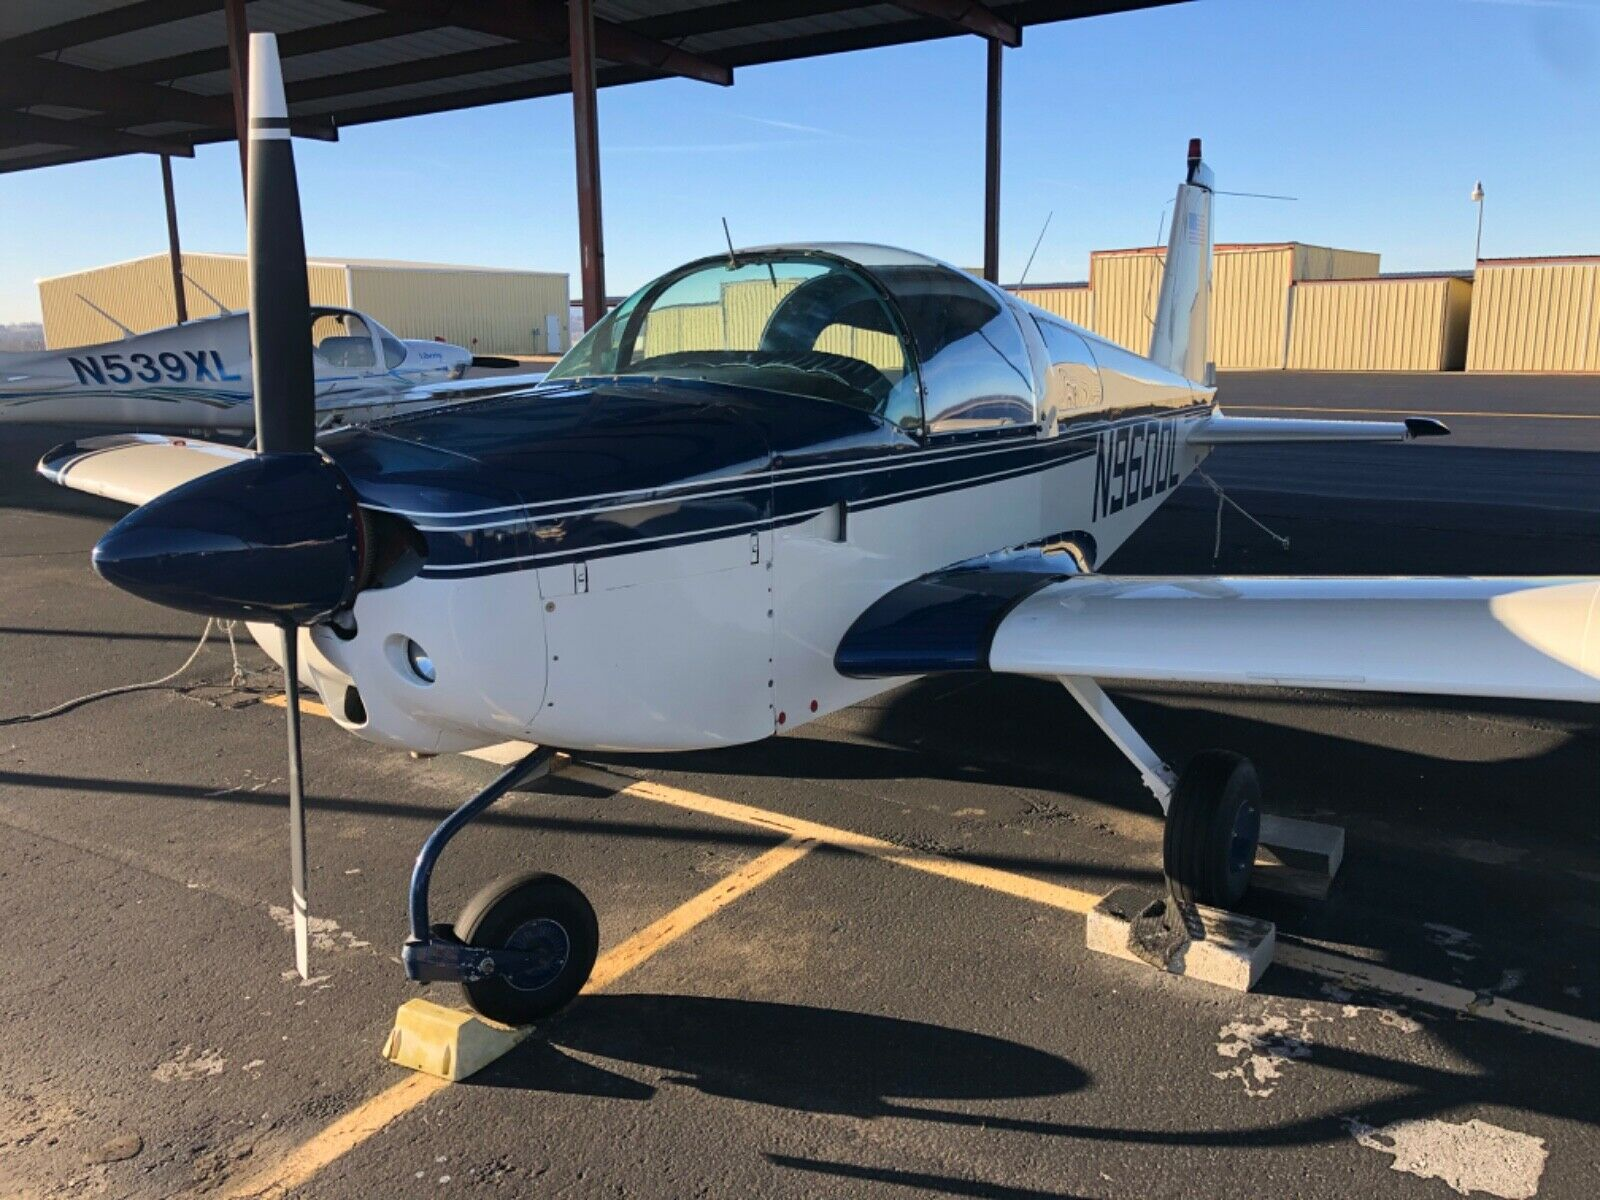 Super Low Time 1973 Grumman AA1 B aircraft for sale